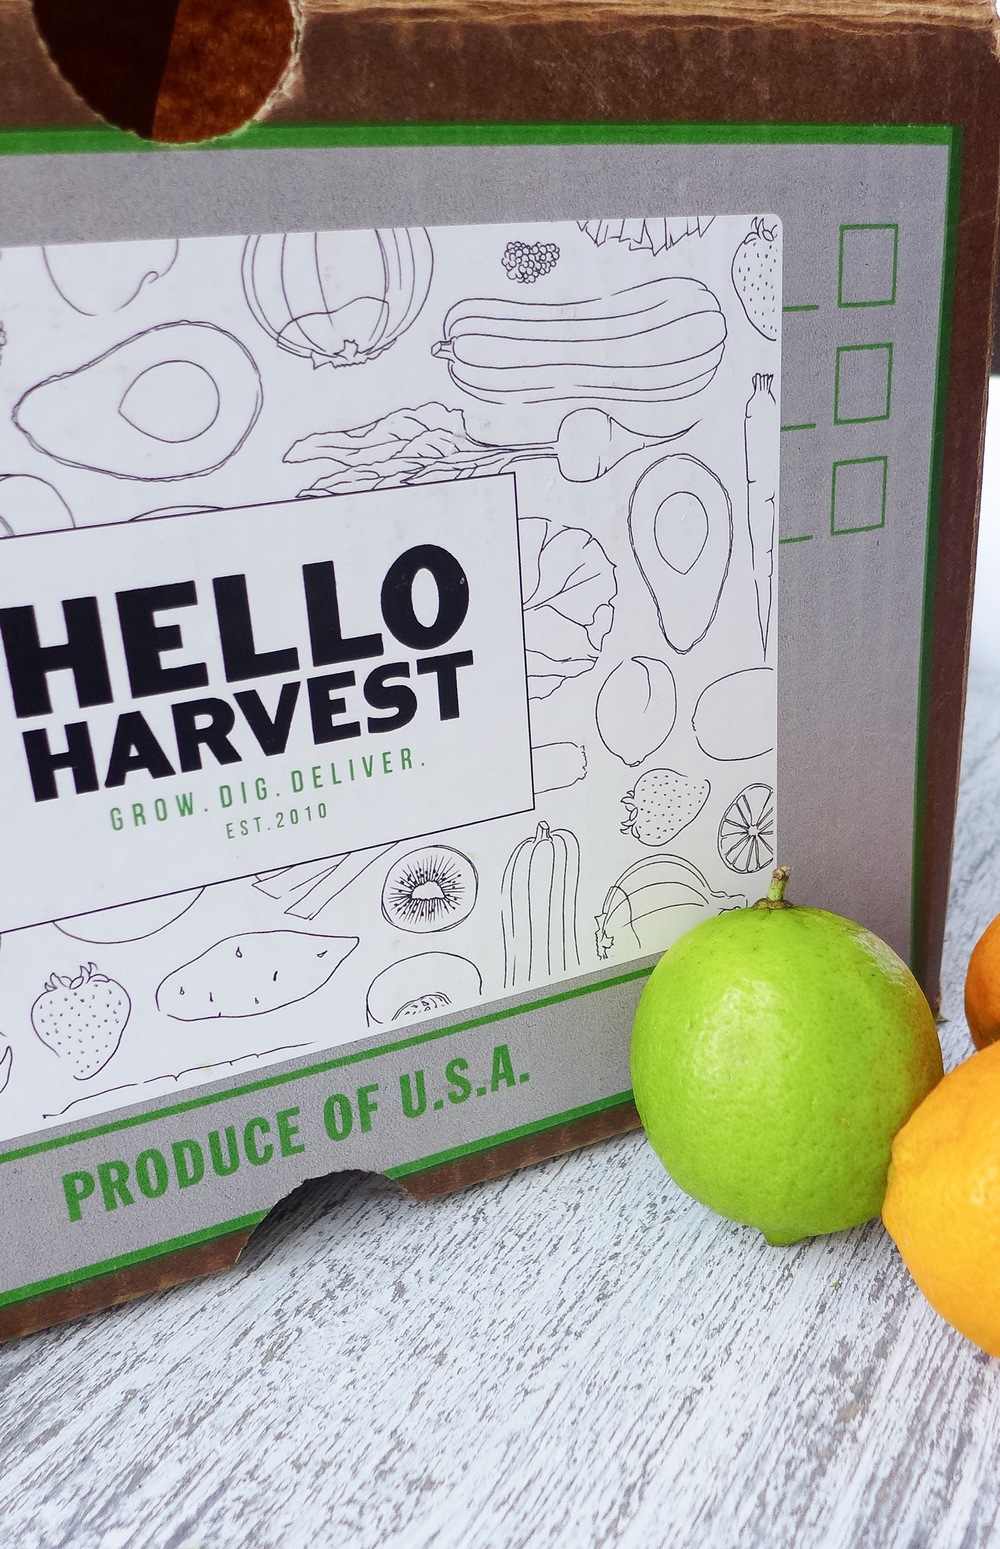 HELLO-HARVEST-HOME-DELIVERY-GROCERIES.JPG